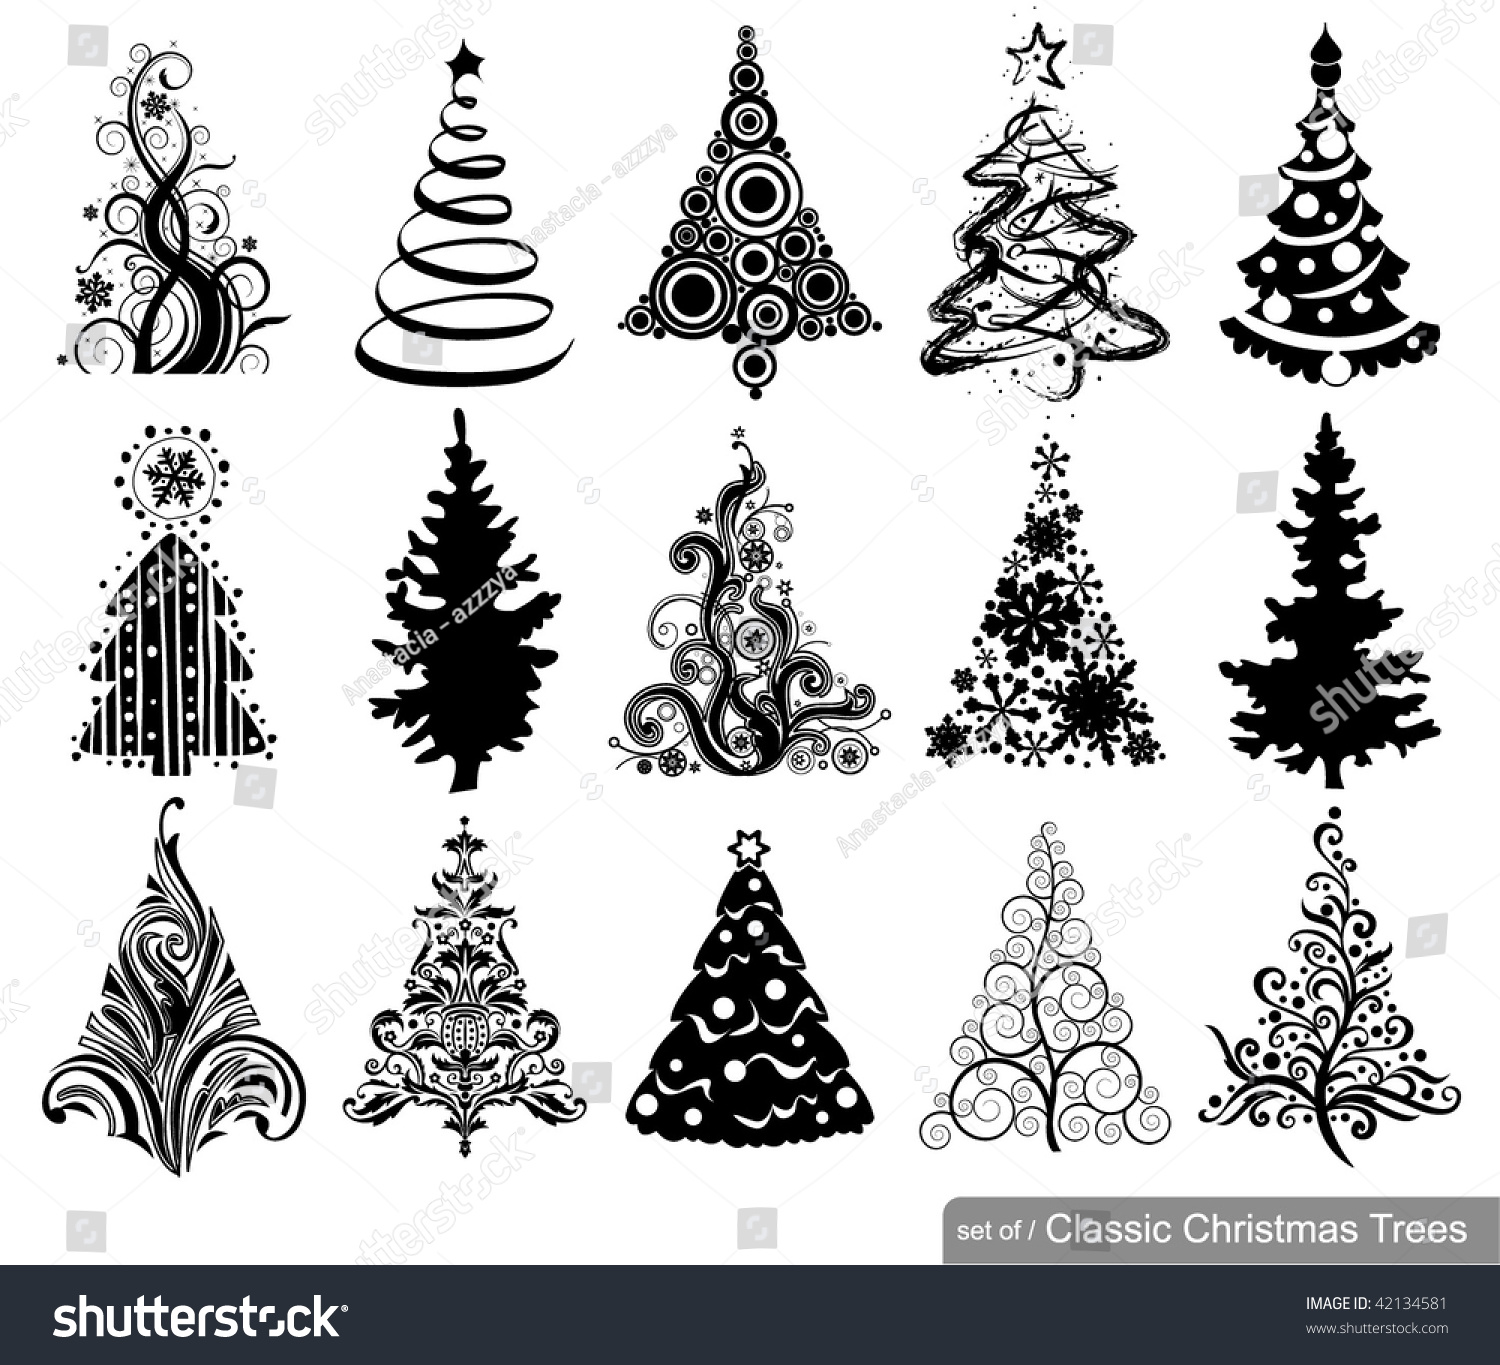 set of classic christmas trees 15 designs in one file to see similar sets - Classic Christmas Trees